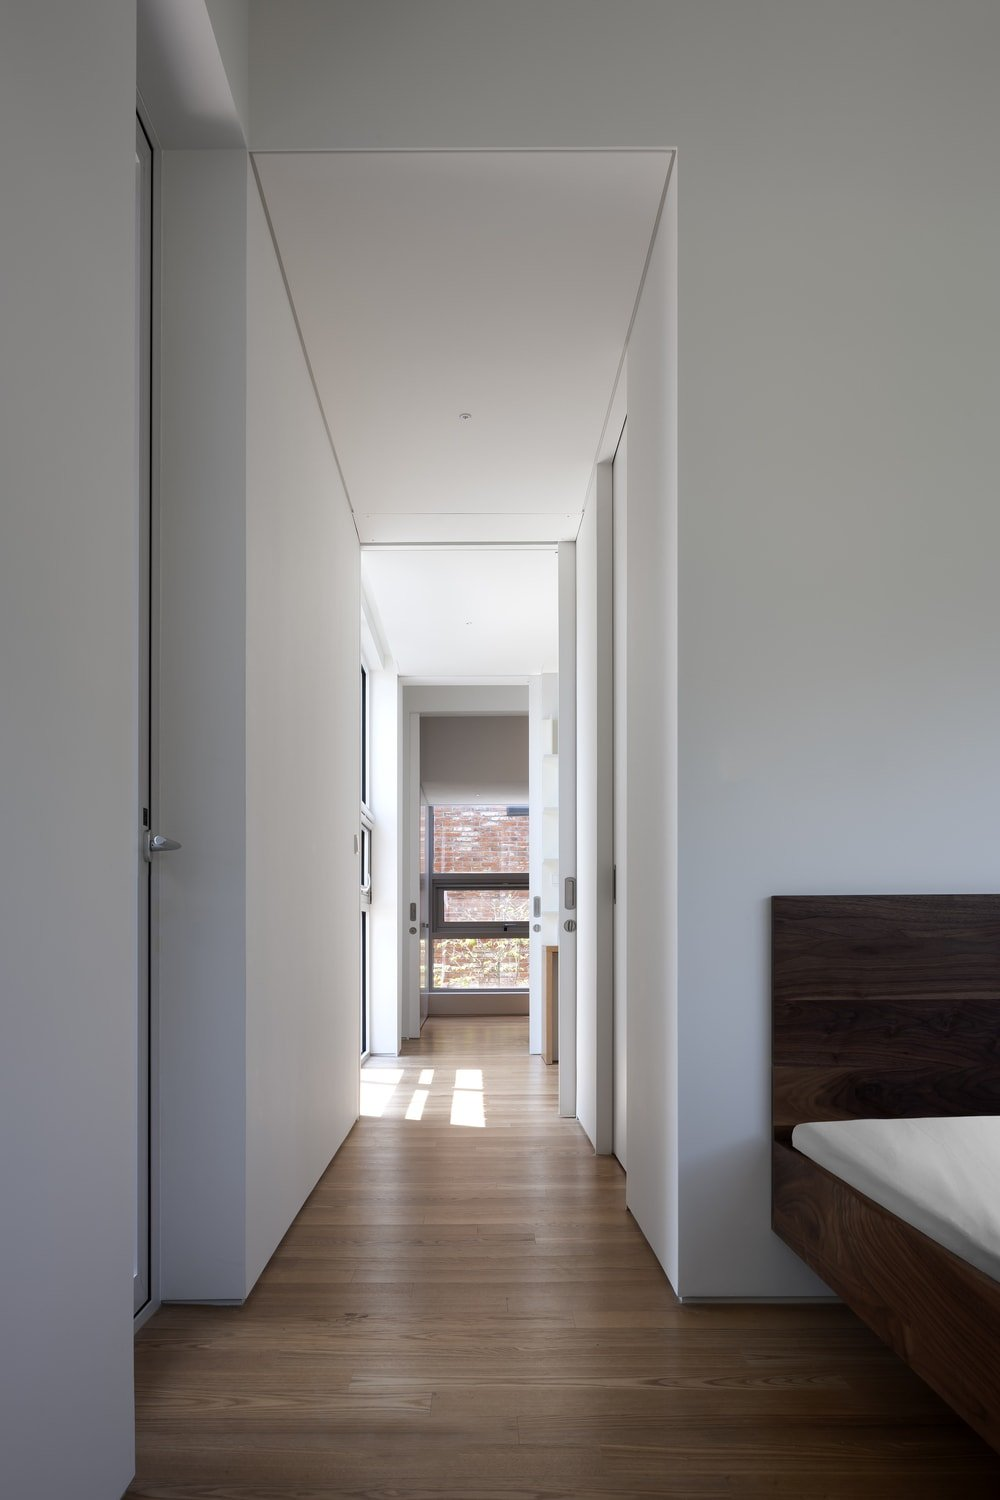 This is a look at the bedroom with a large wooden floating platform bed that is slightly darker than the hardwood flooring.